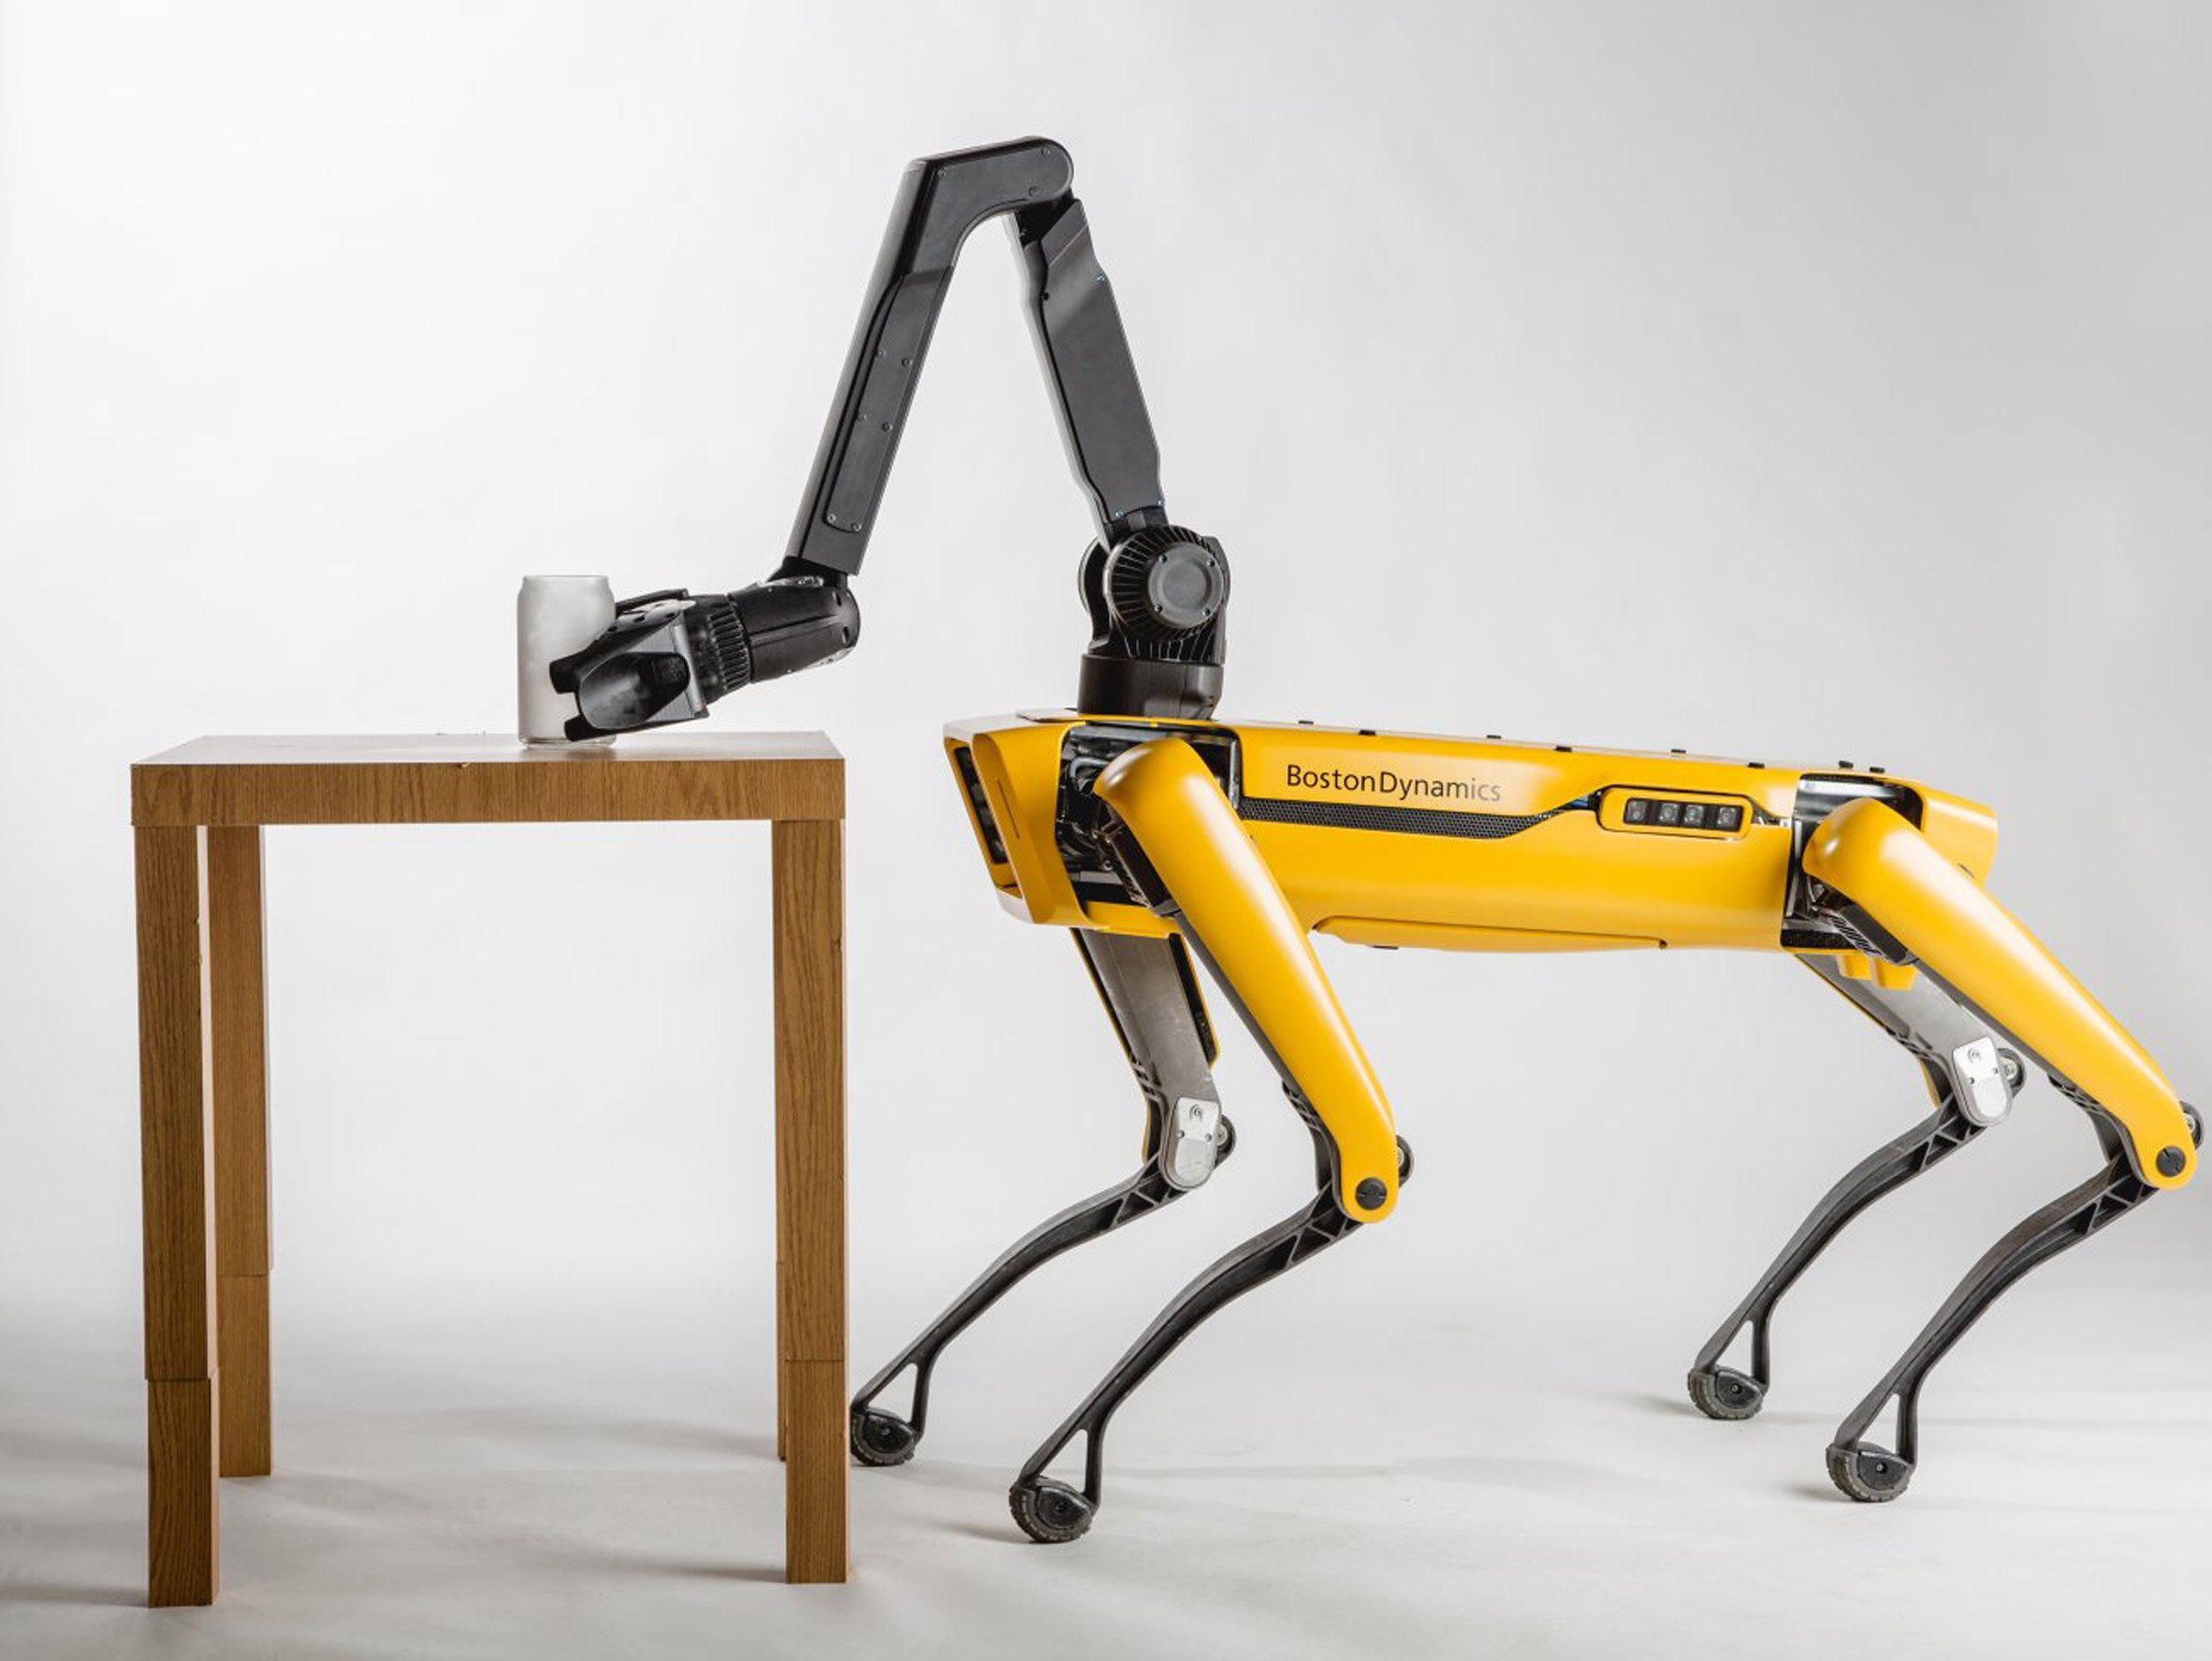 Boston Dynamics to start selling SpotMini robot as soon as 2019